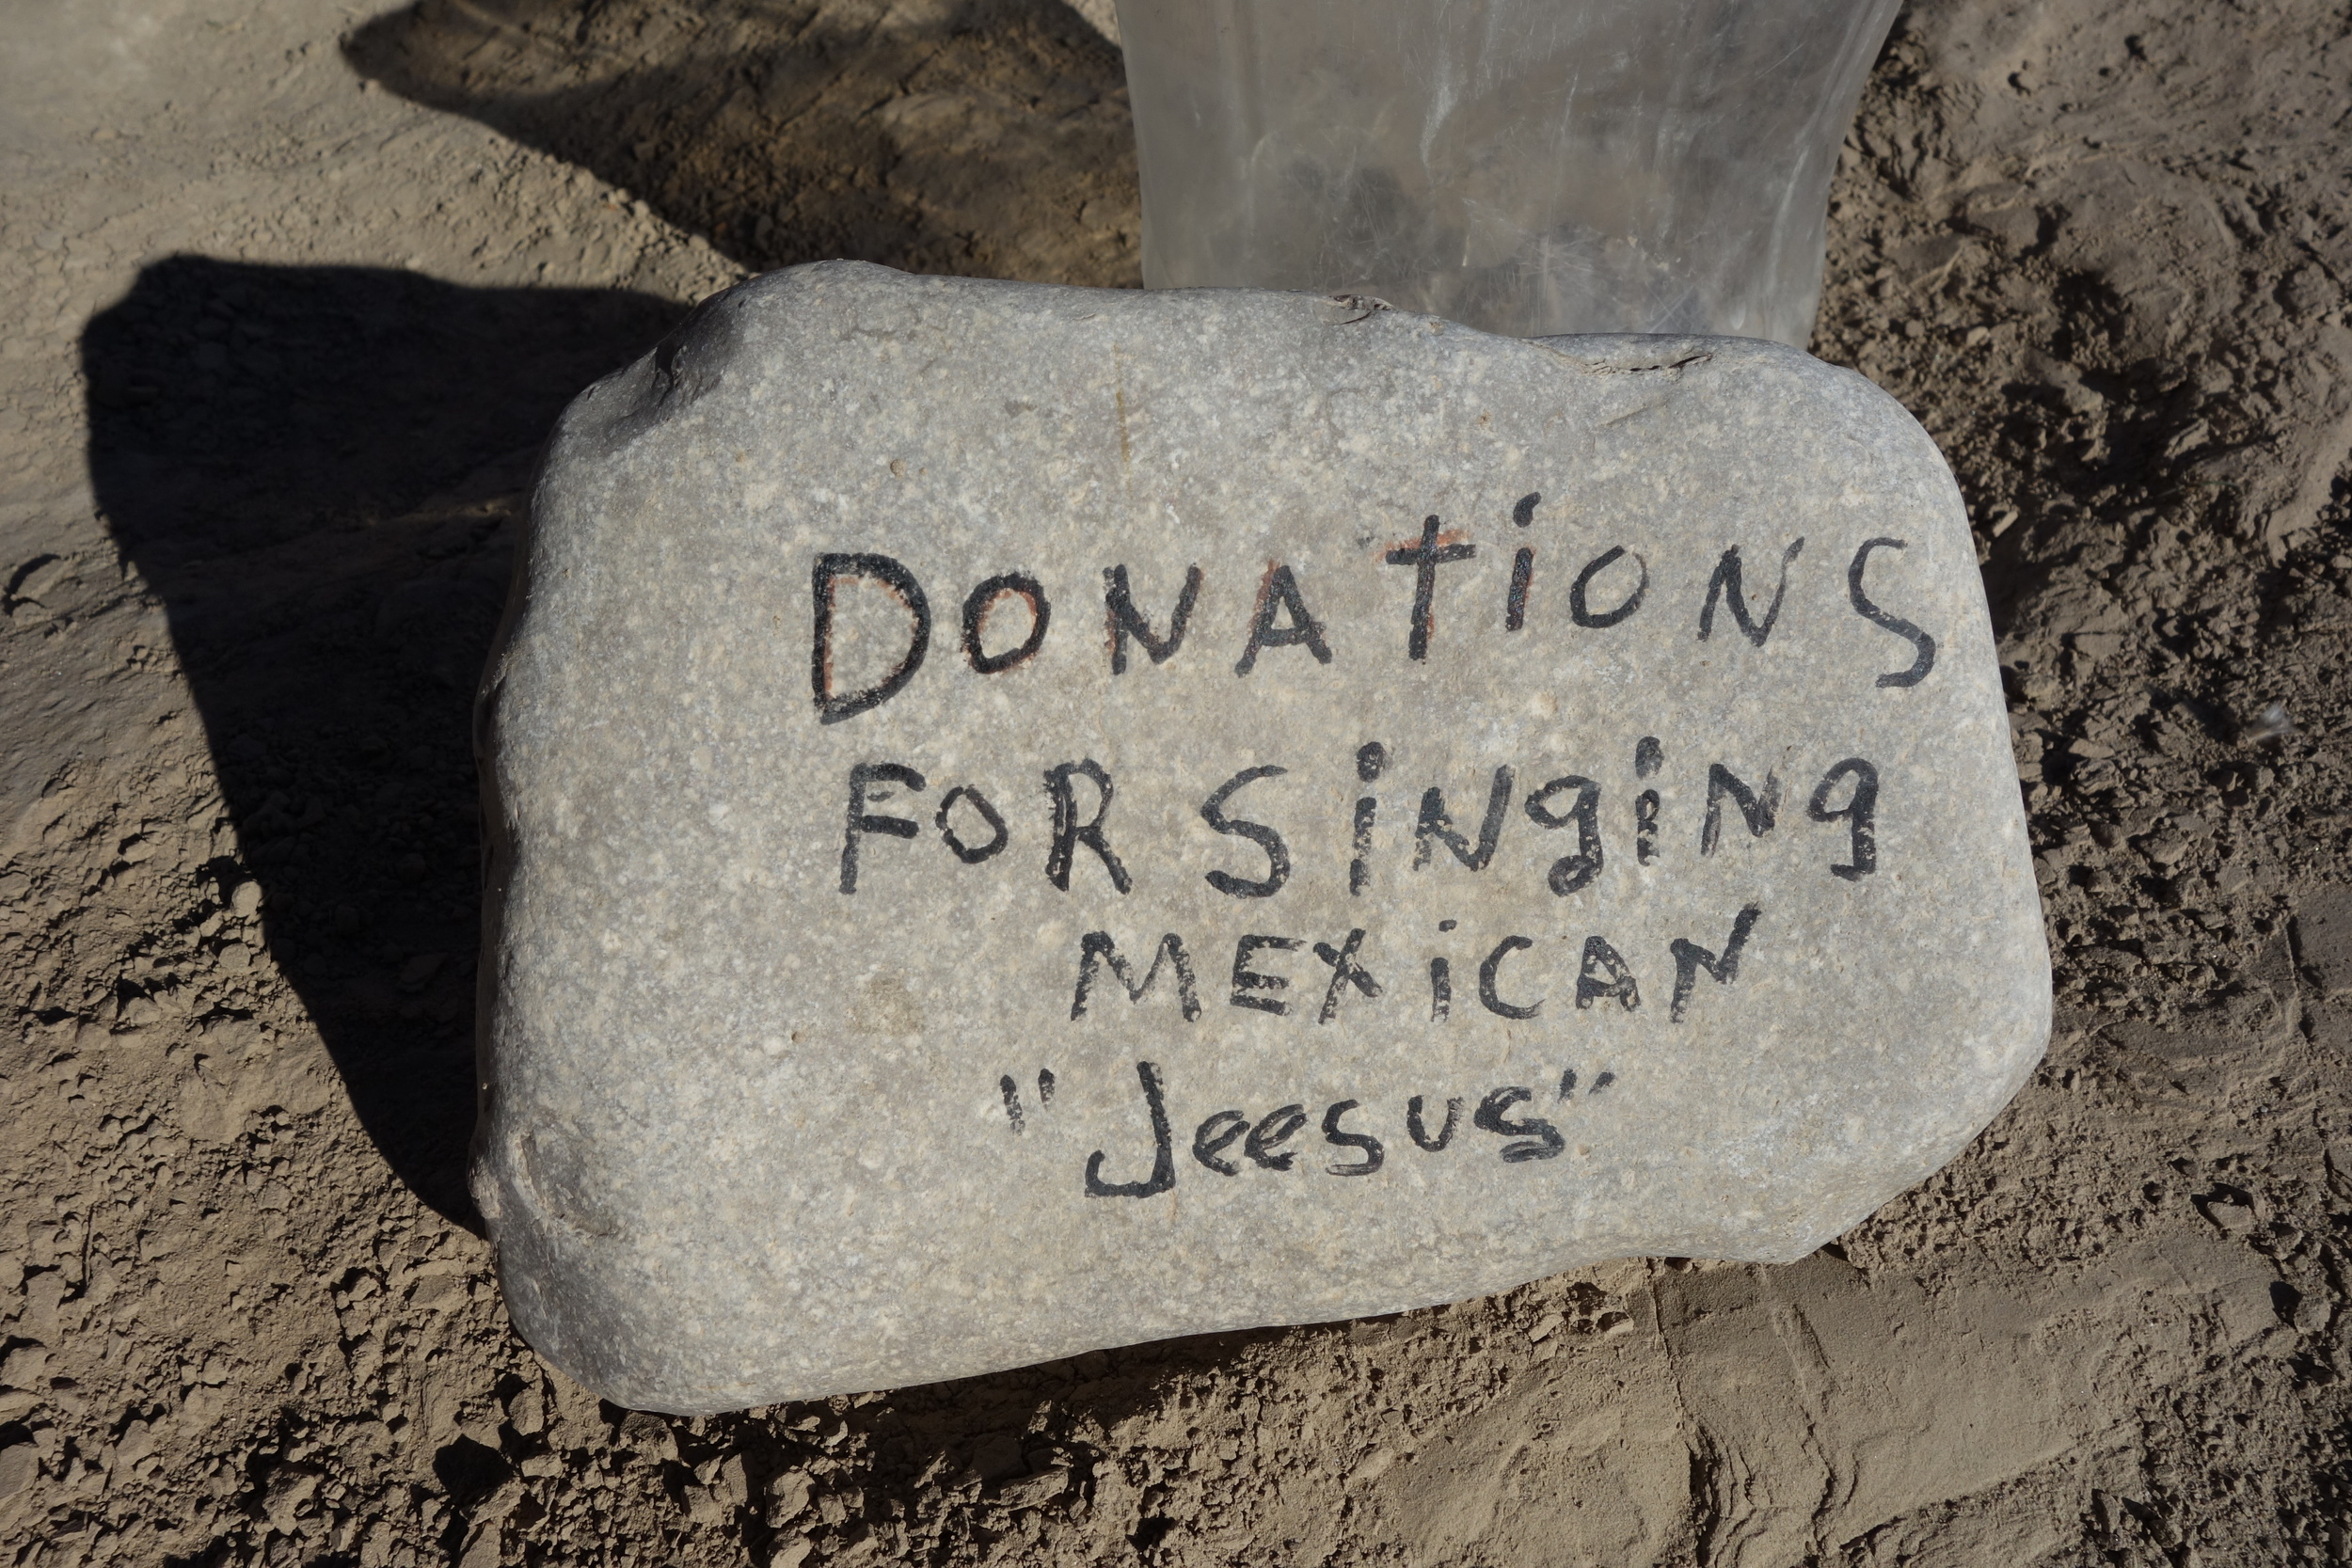 as seen on the US mexico border. he comes out and sings across the border river.